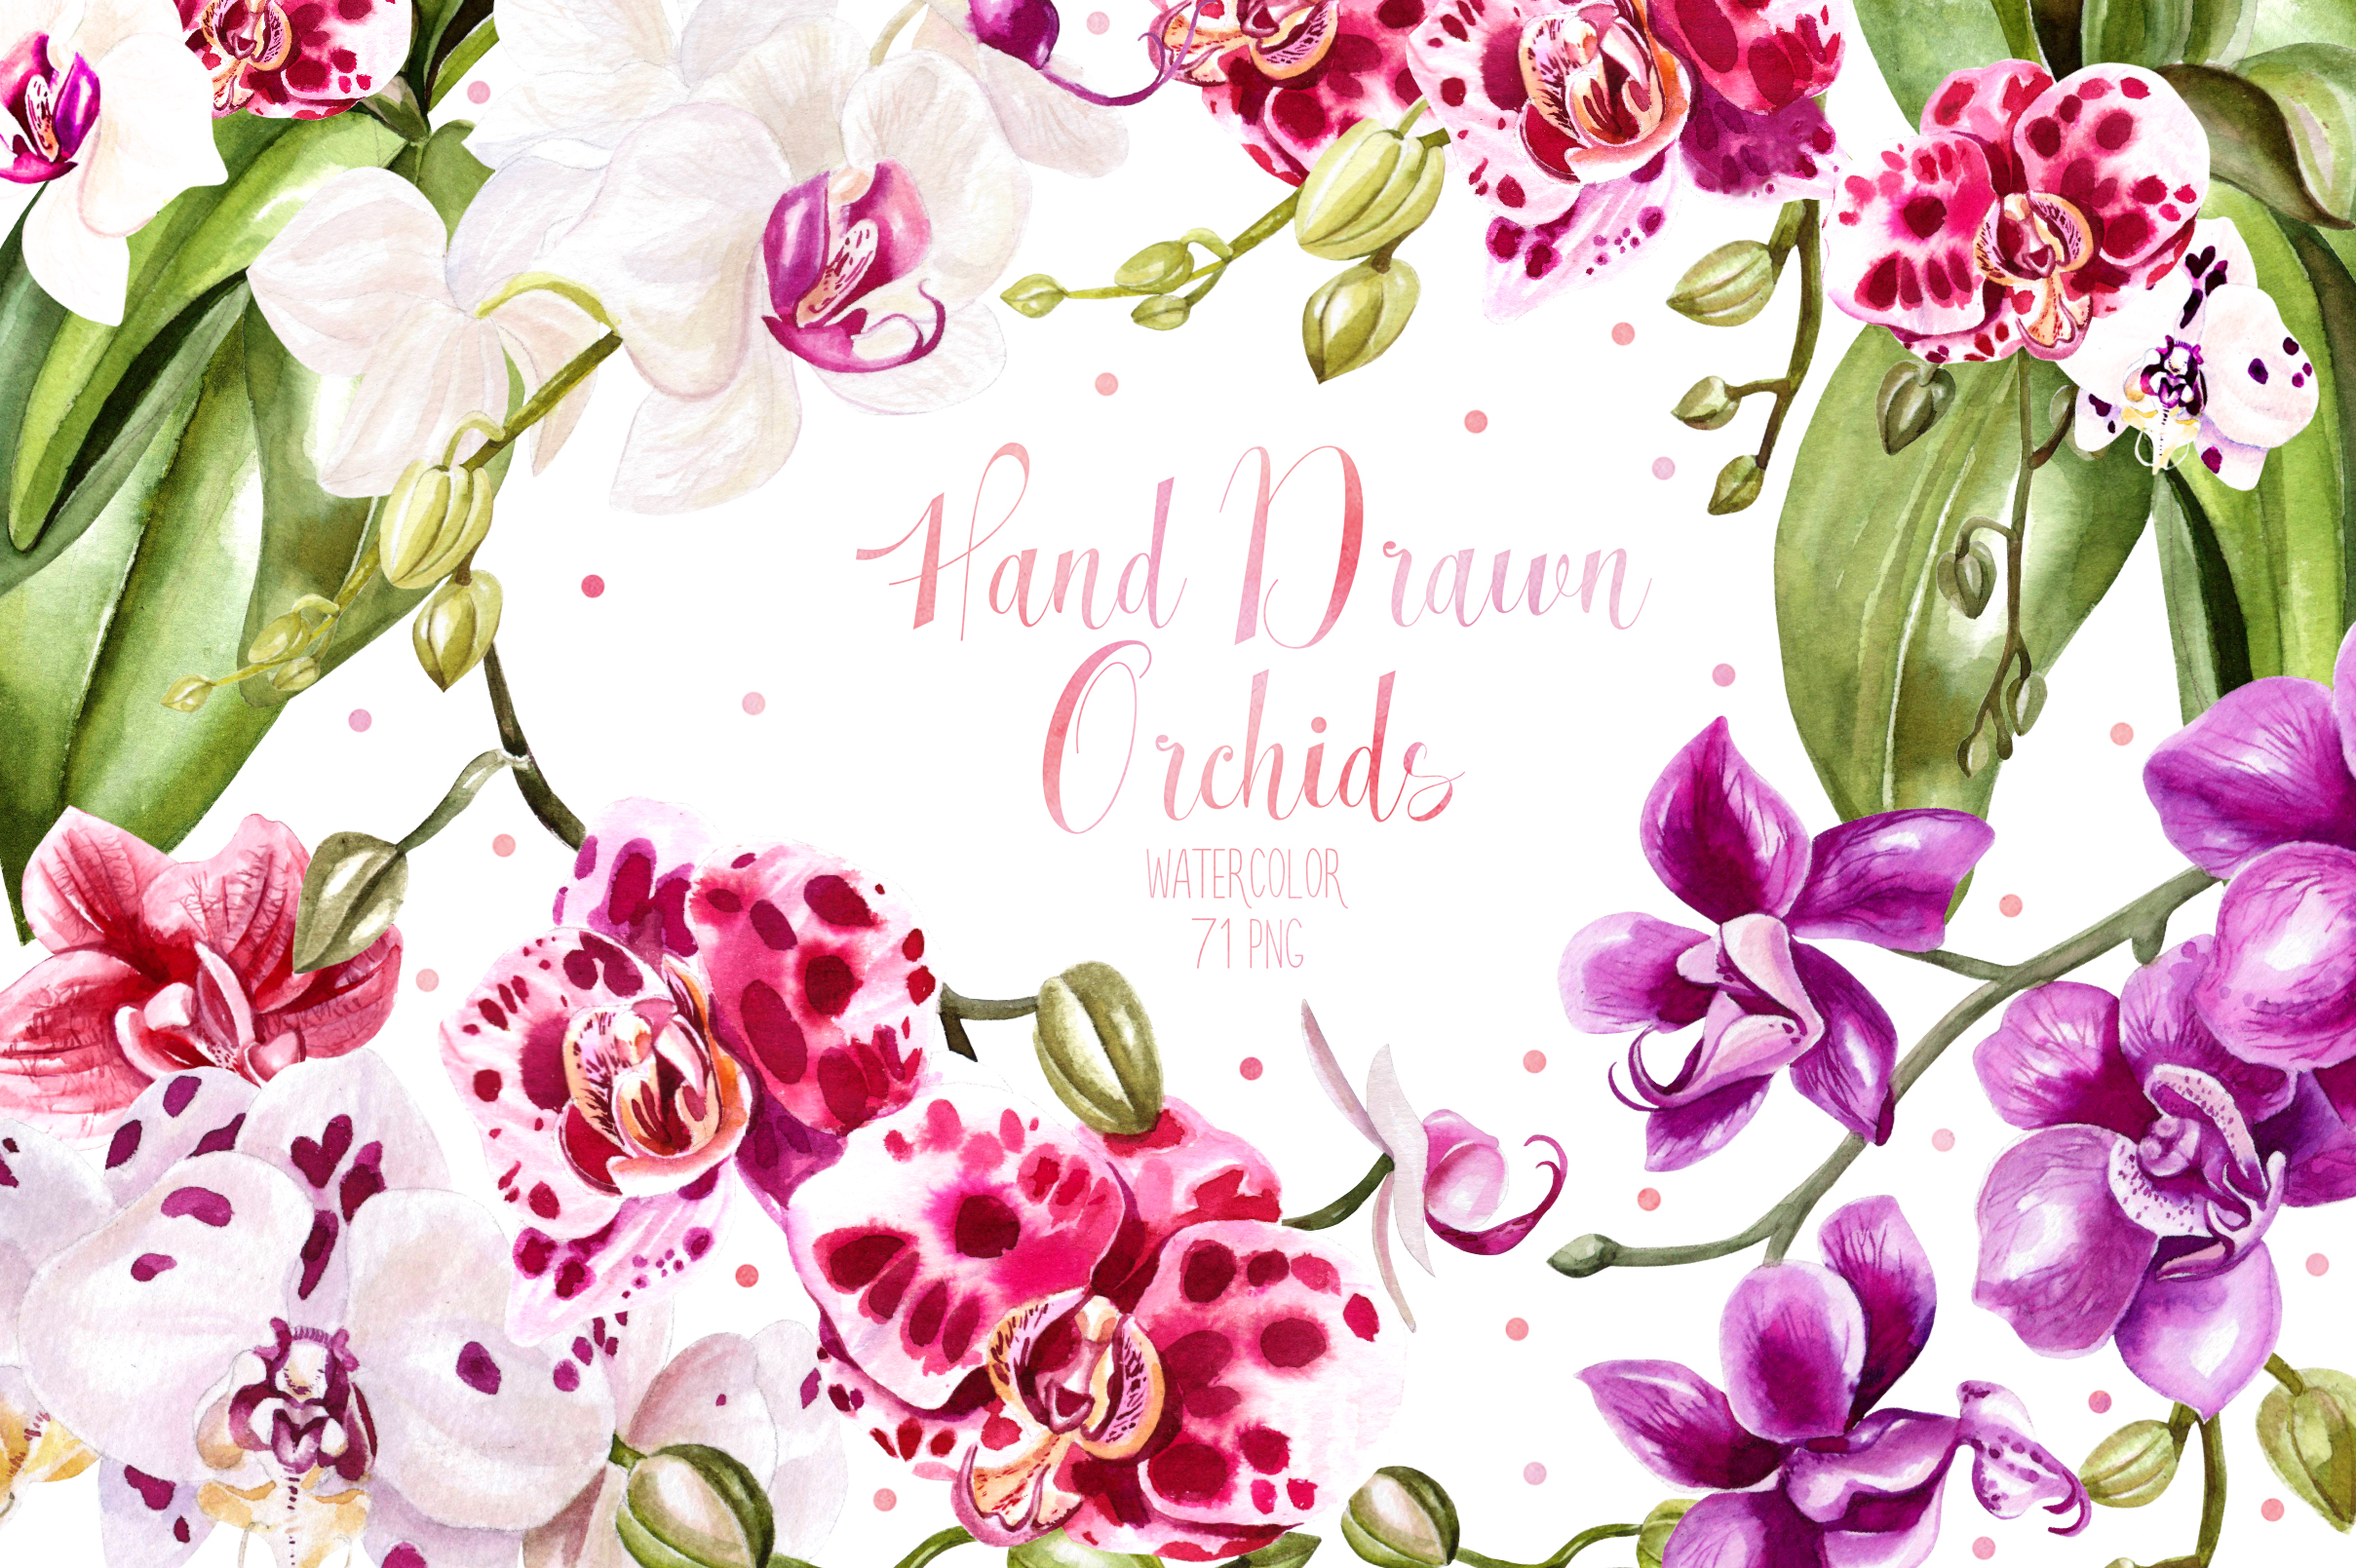 Hand Drawn Watercolor Orchids Graphic Objects By Knopazyzy